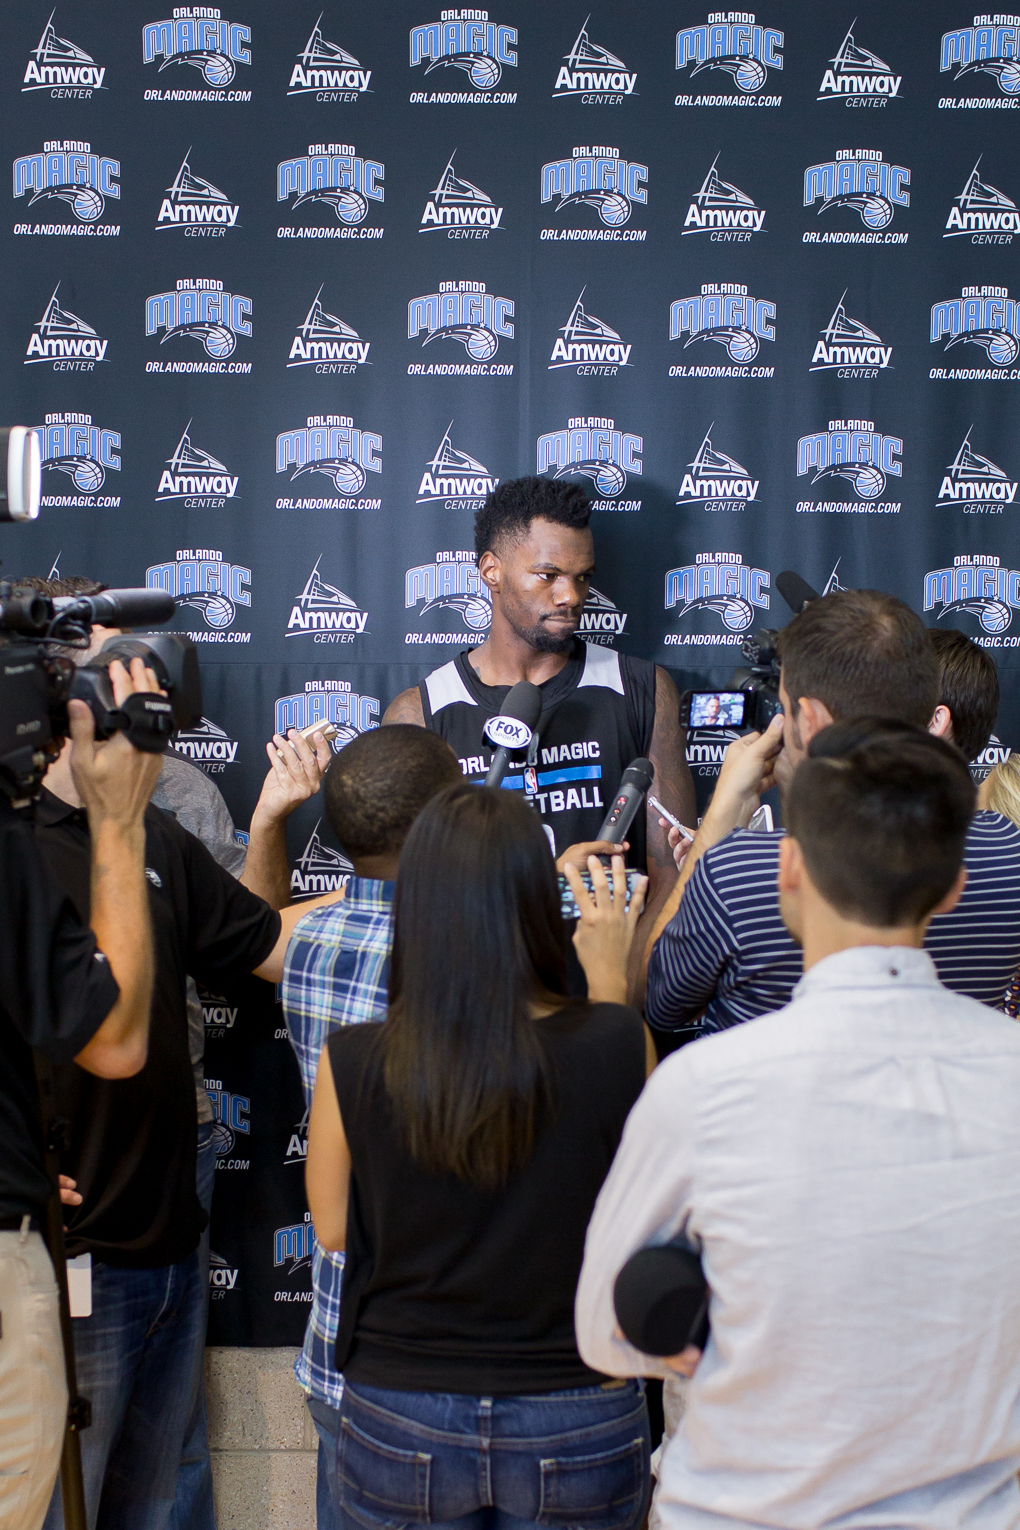 Orland-Magic-Amway-Center-THE-DAILY-STREET-5